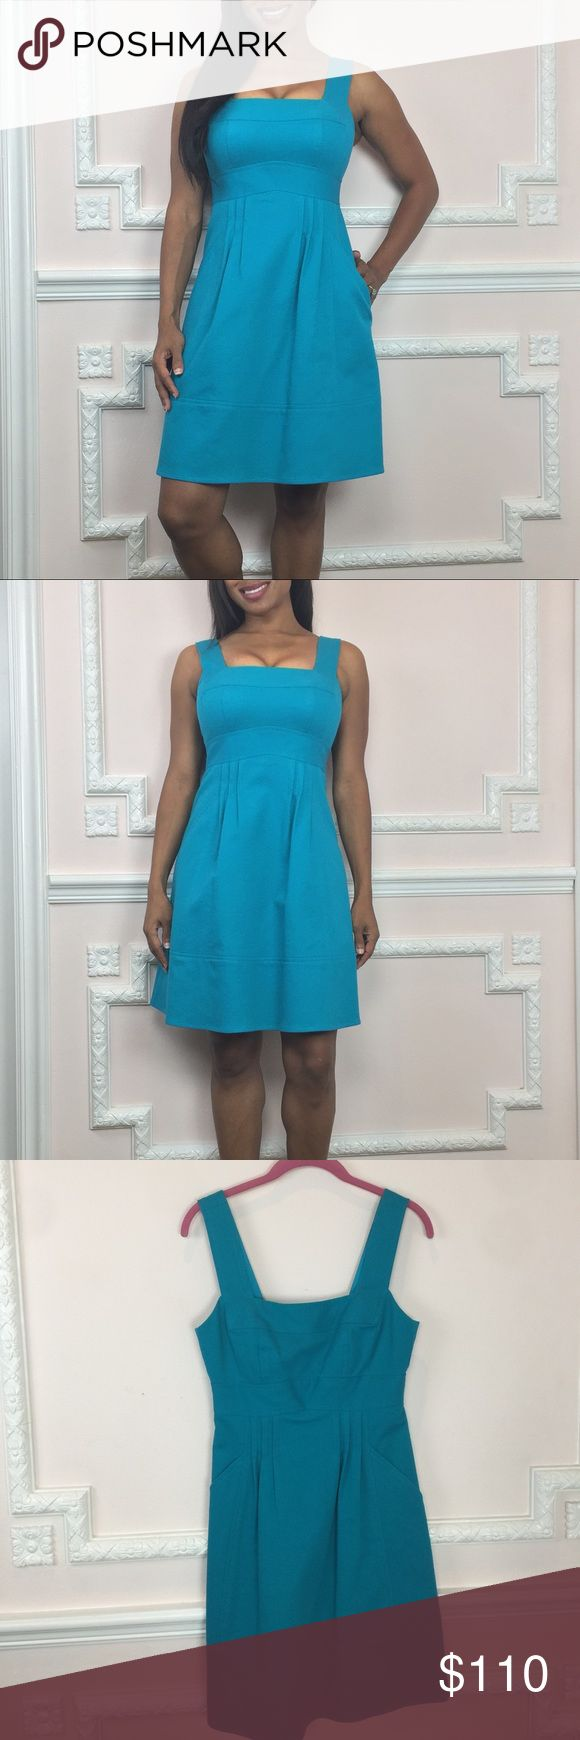 Nanette Lepore dress like new Worn once & like new! Color is an aquamarine blue. Fully Lined. Back zip.Pockets. Sleeveless. Great A line for an easy fit. Textured fabric and darts throughout that lend to the perfect fit. Perfect for a party, going out or just looking cute:) For reference I am 5'2 Measurements (Flat) Length - 26 inches Underarm to bottom hem Bust- 30 inches Waist - 25 Inches Hip- 33 inches Visit and follow my closet for hundreds of styles in all price ranges! Nanette Lepore…